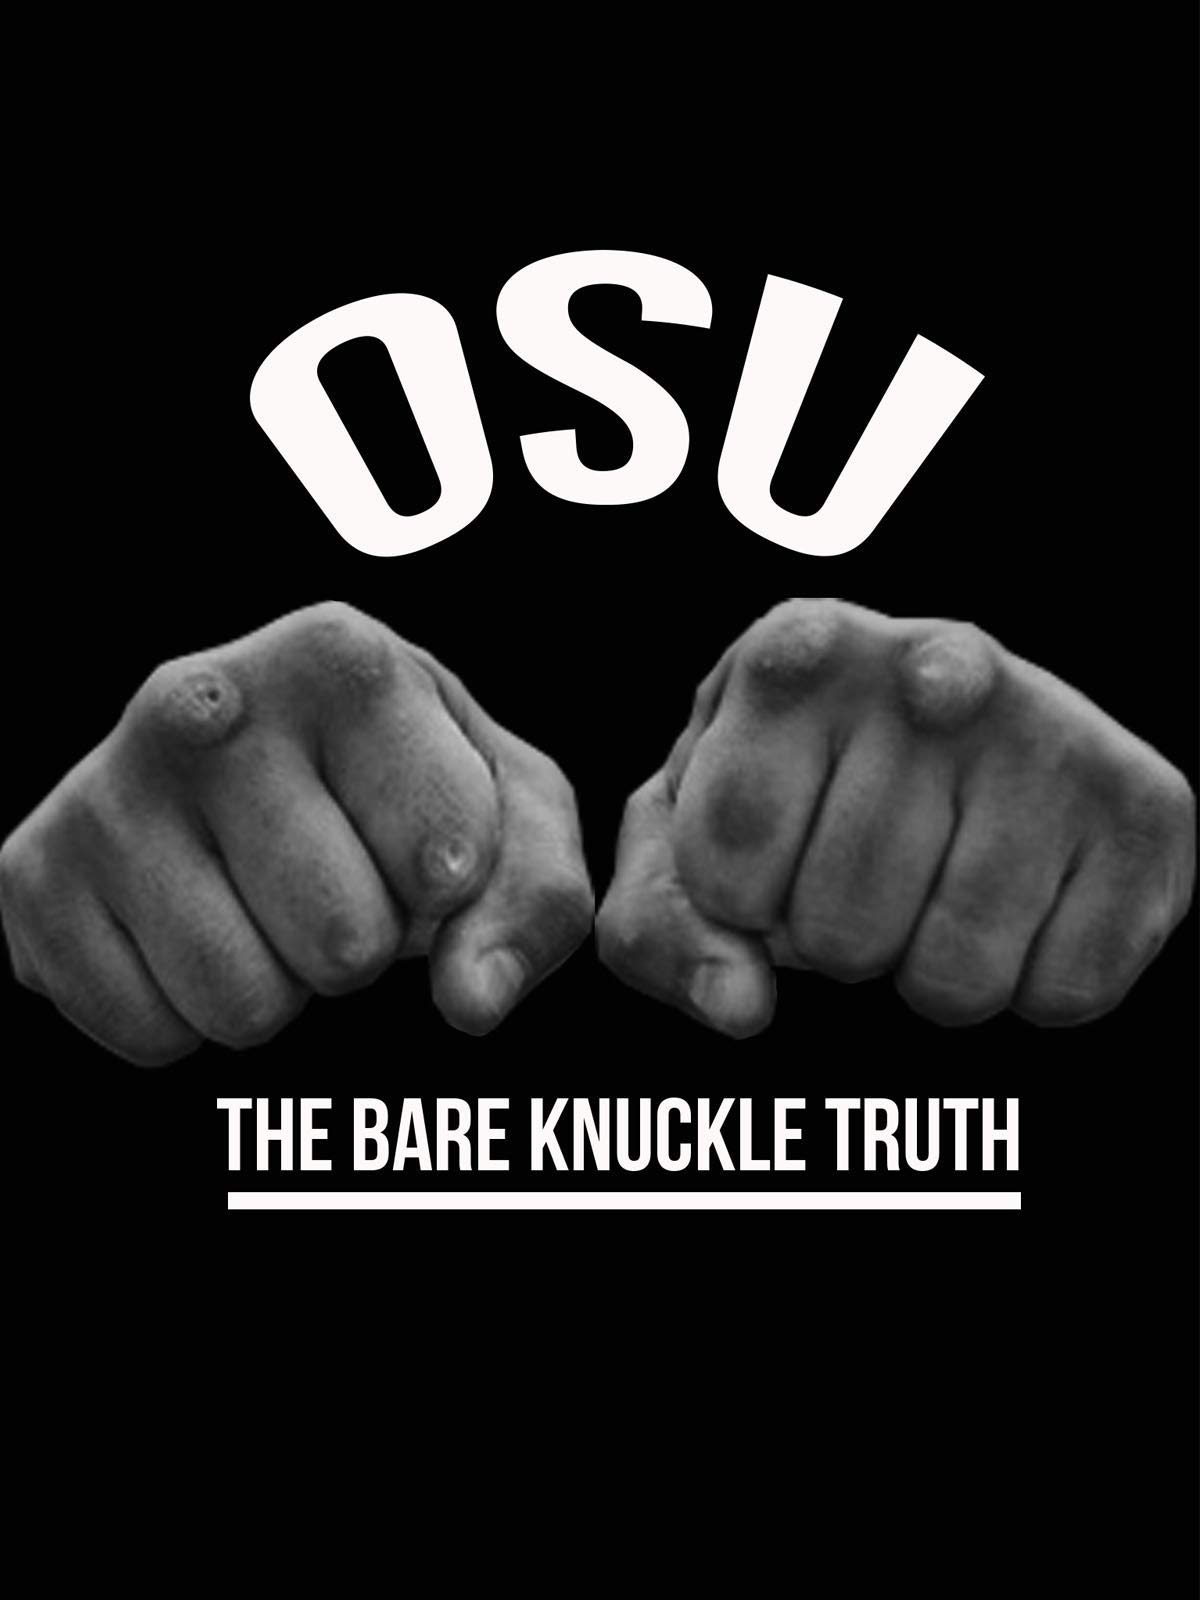 Osu! The Bare Knuckle Truth